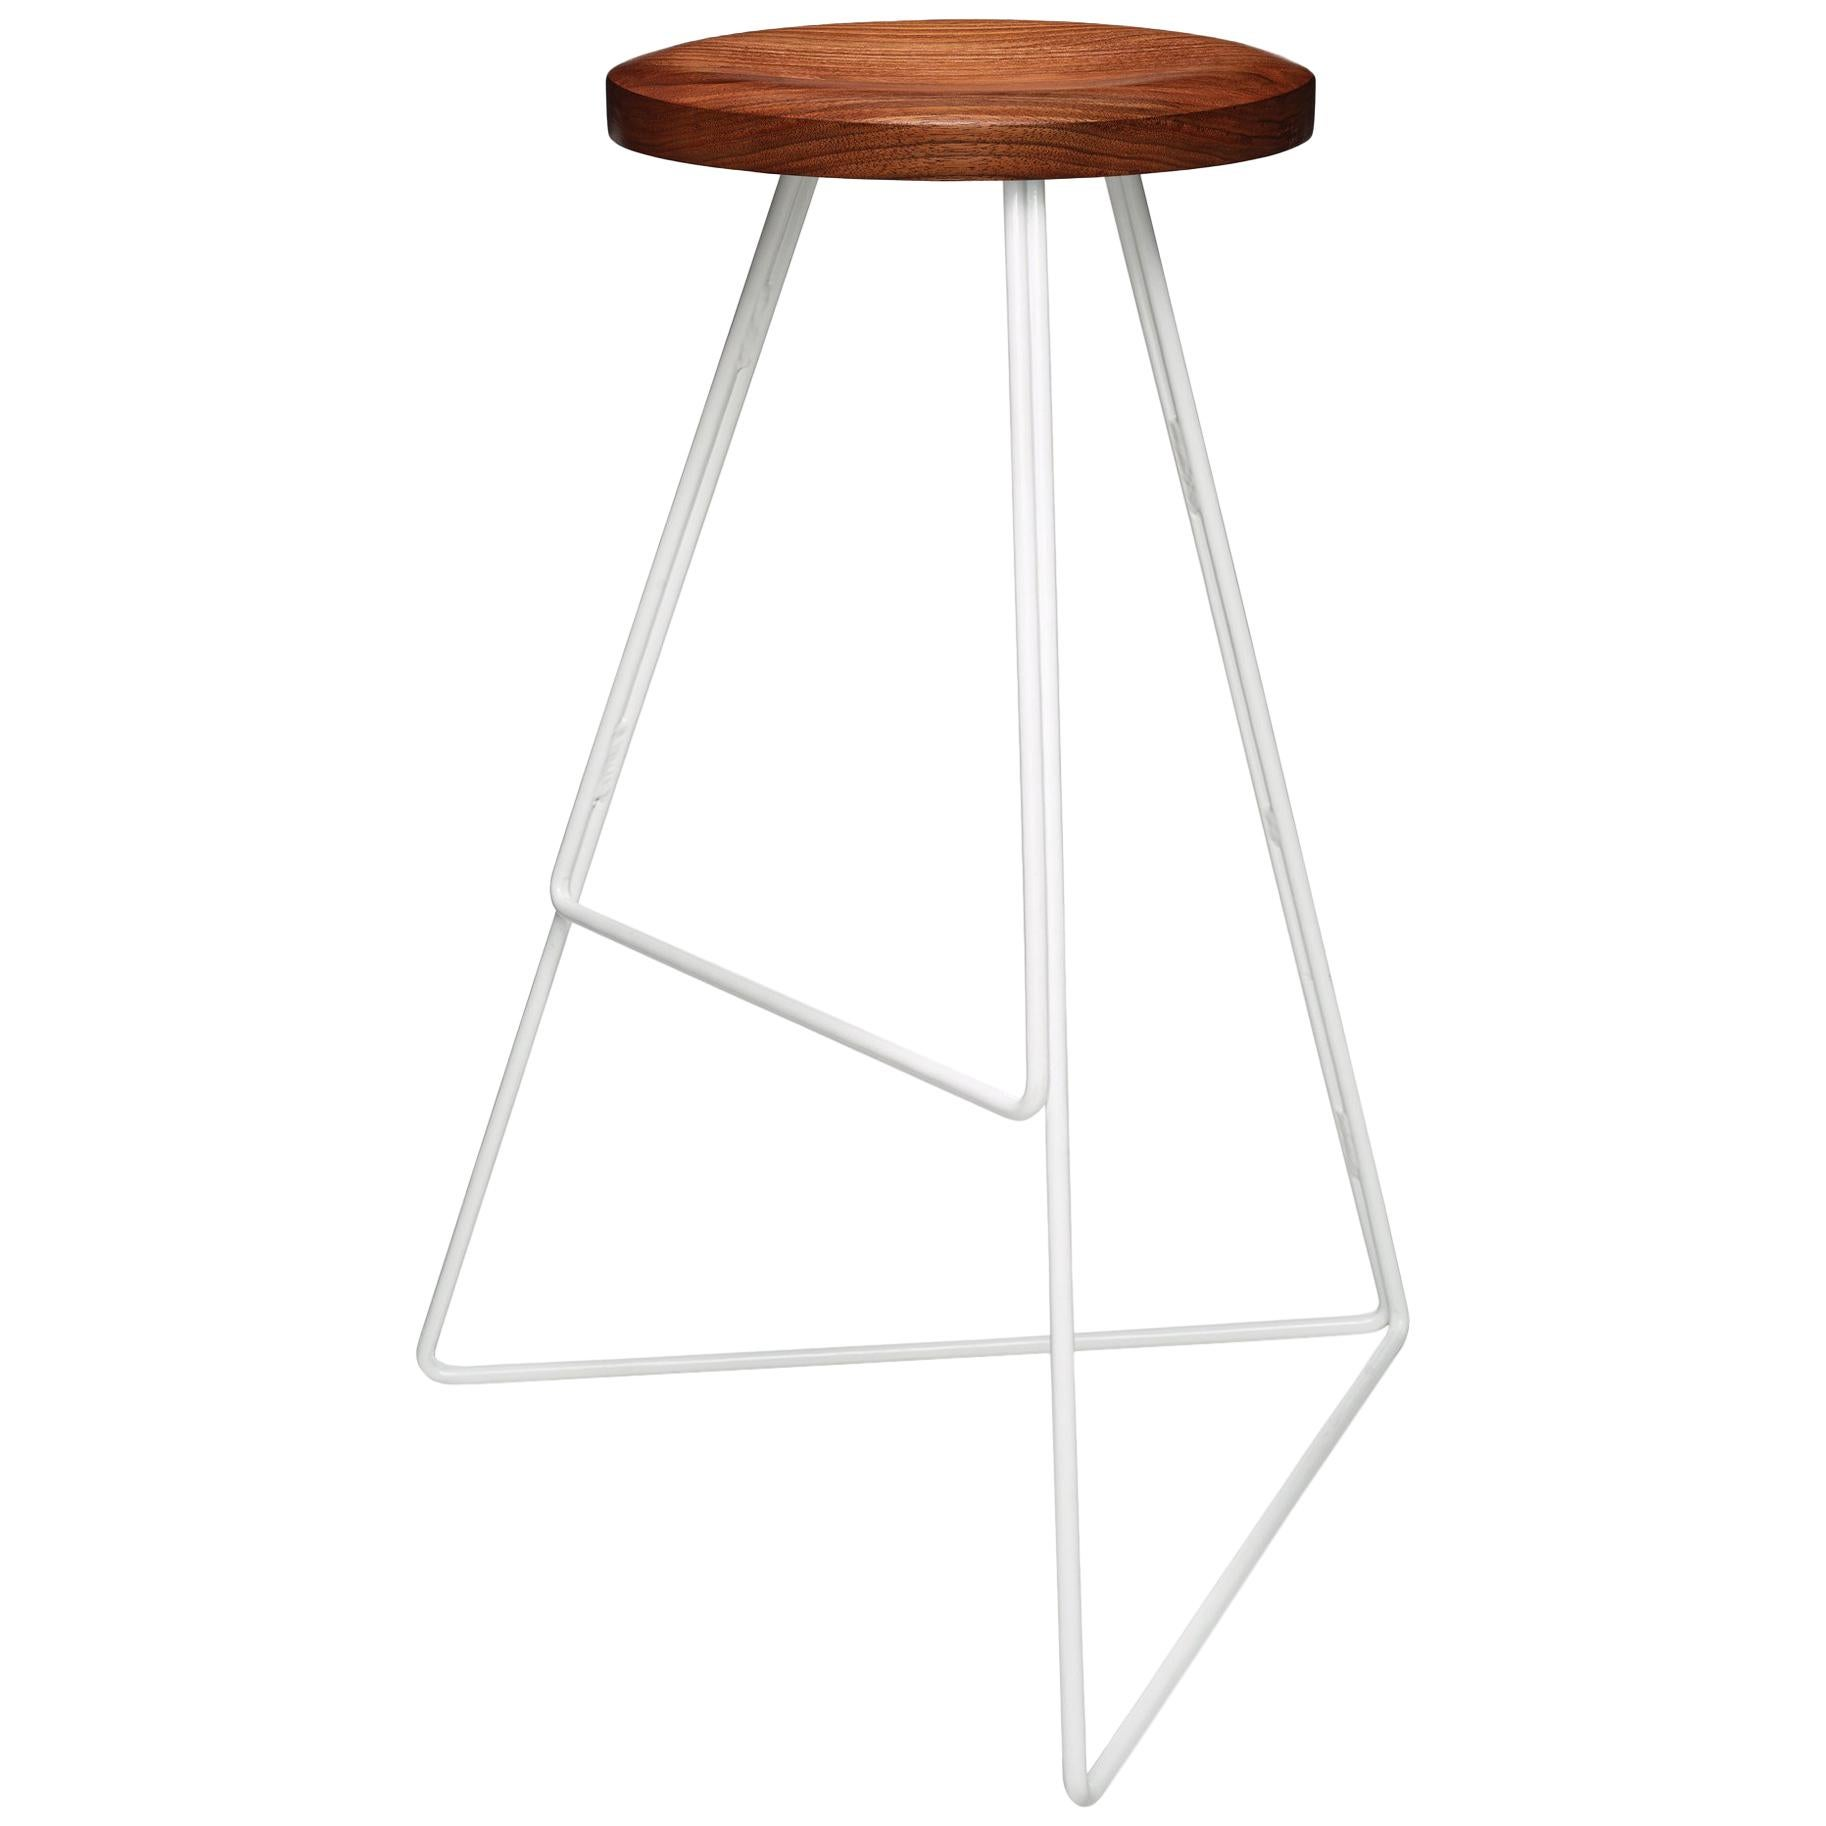 The Coleman Stool - White and Walnut, Counter Height.  54 Variations Available.